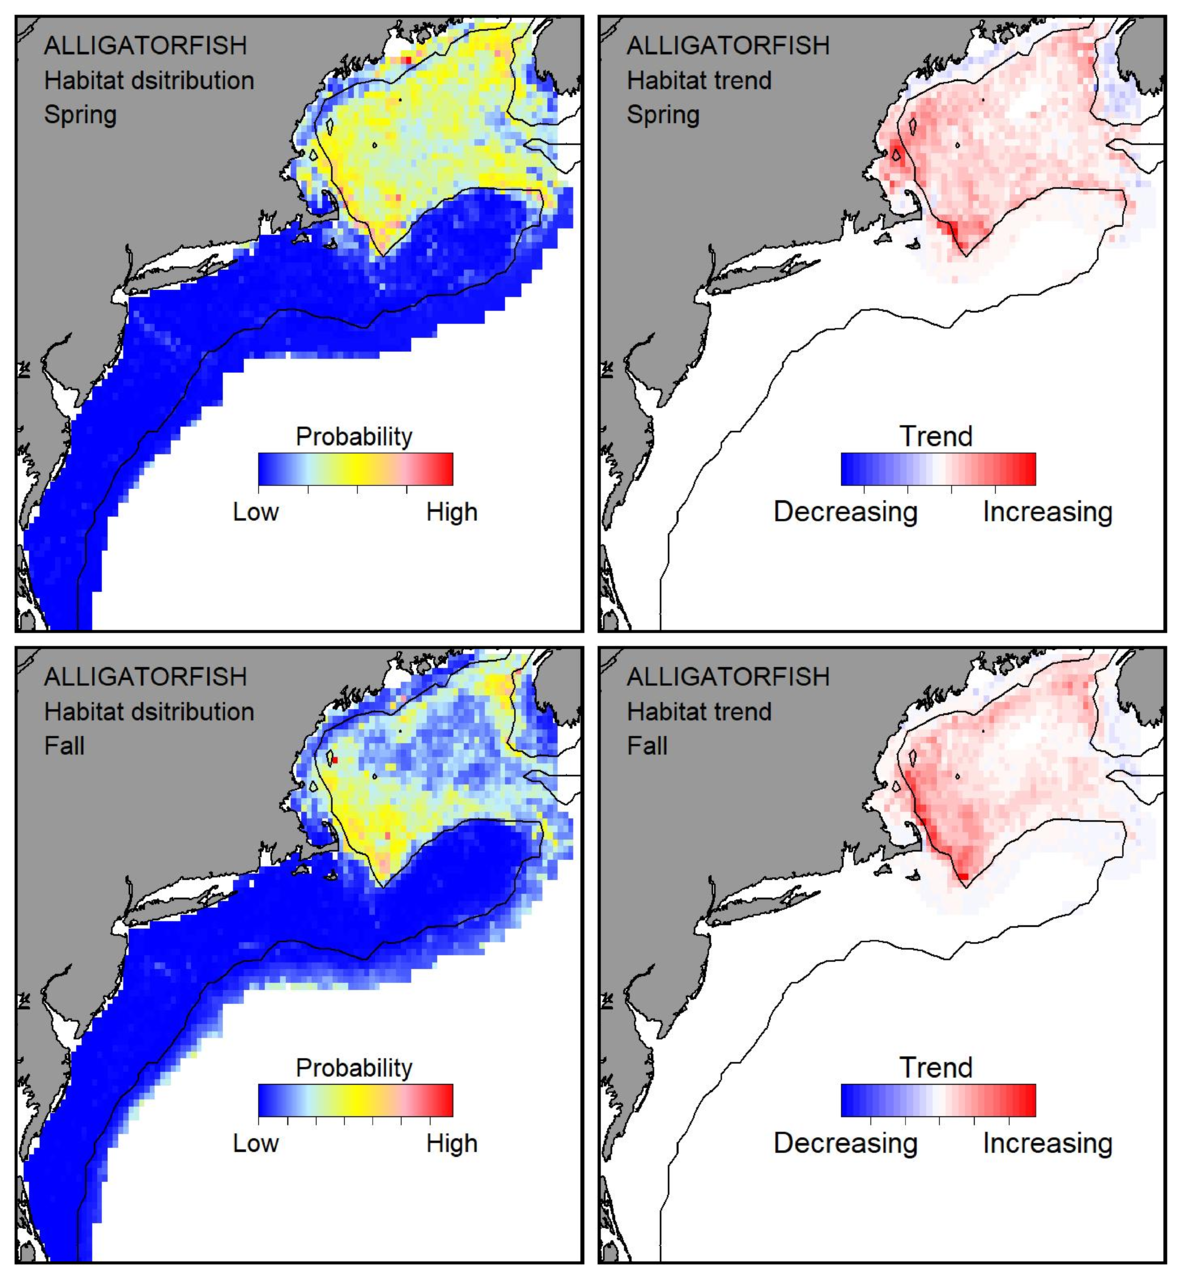 Probable habitat distribution for alligatorfish showing the highest concentration and increasing trend in the Gulf of Maine during the spring. Bottom row: Probable habitat distribution for alligatorfish showing the highest concentration and increasing trend in the Gulf of Maine during the fall.